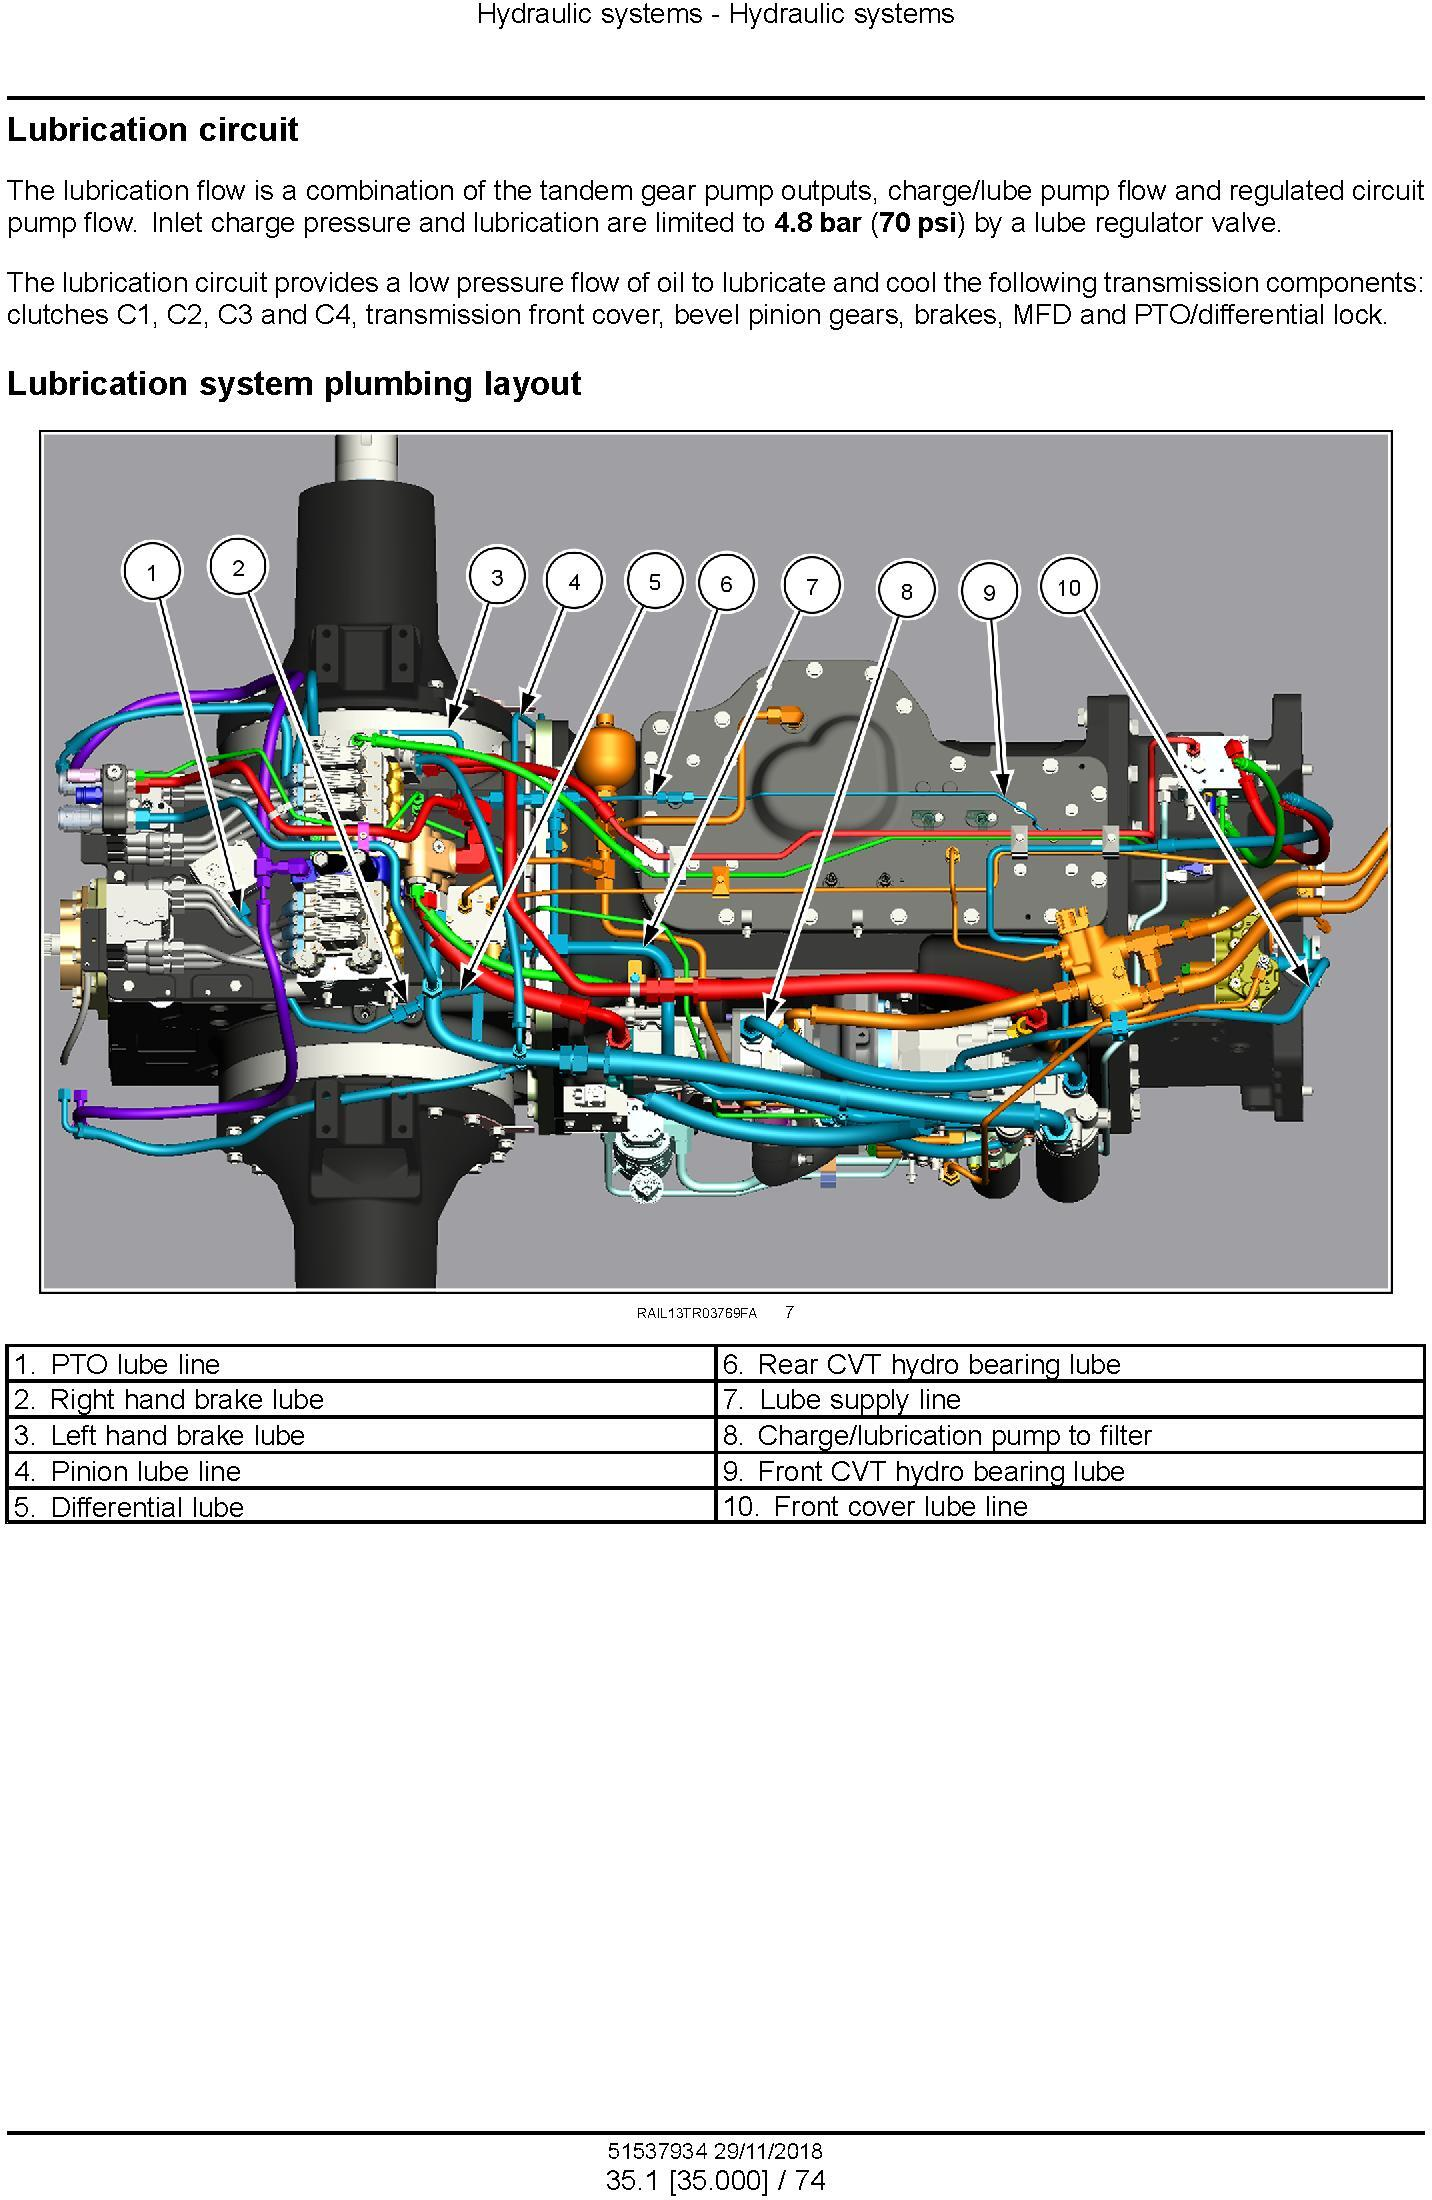 New Holland T8.320, T8.350, T8.380, T8.410, T8.435 and SmartTrax CVT TIER 4B Tractor Service Manual - 2